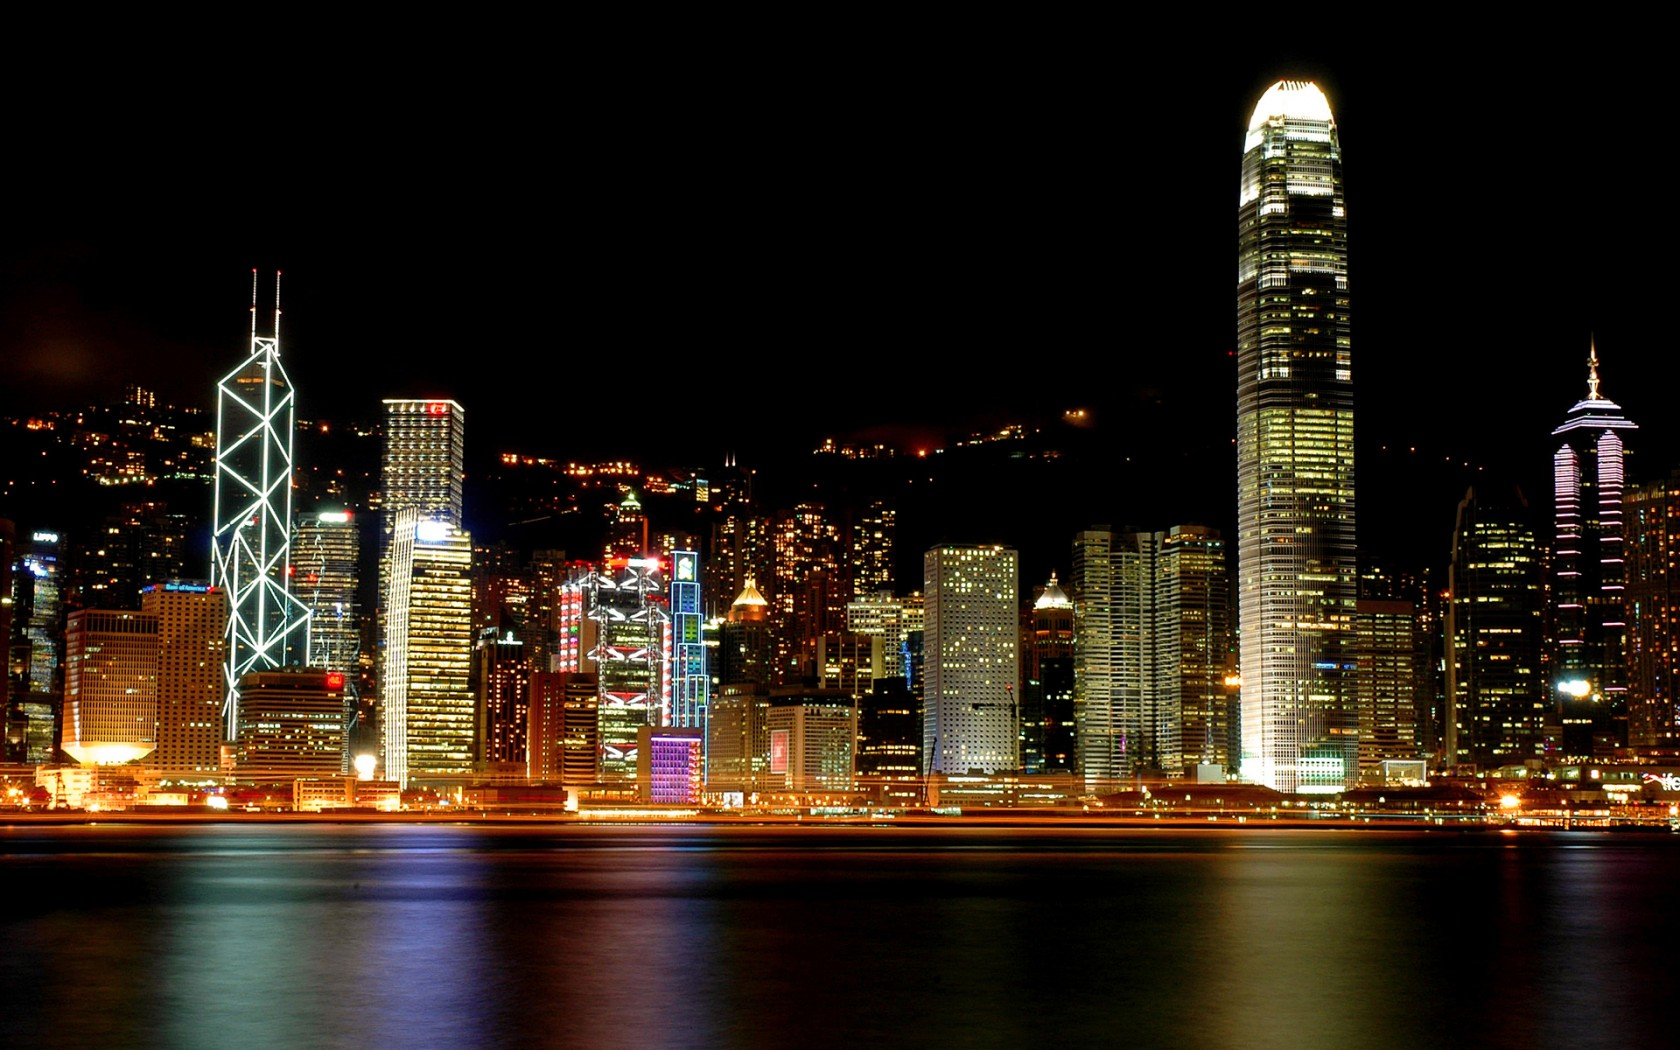 Hong Kong Victoria Harbour Wallpapers | HD Wallpapers | ID #6022